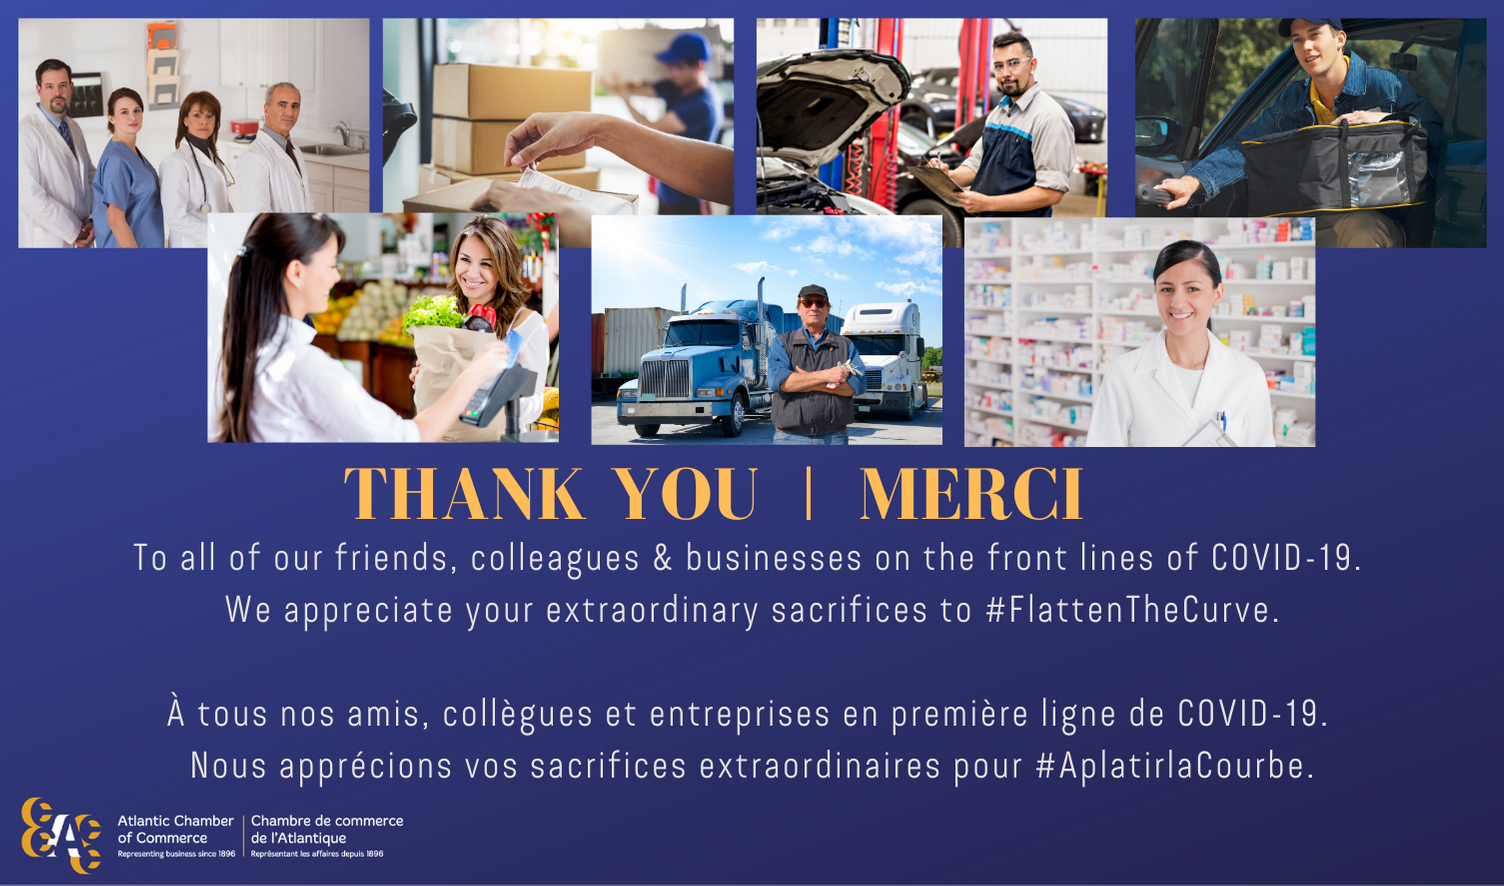 Merci-Thank-You-COVID19_Frontlines1.png